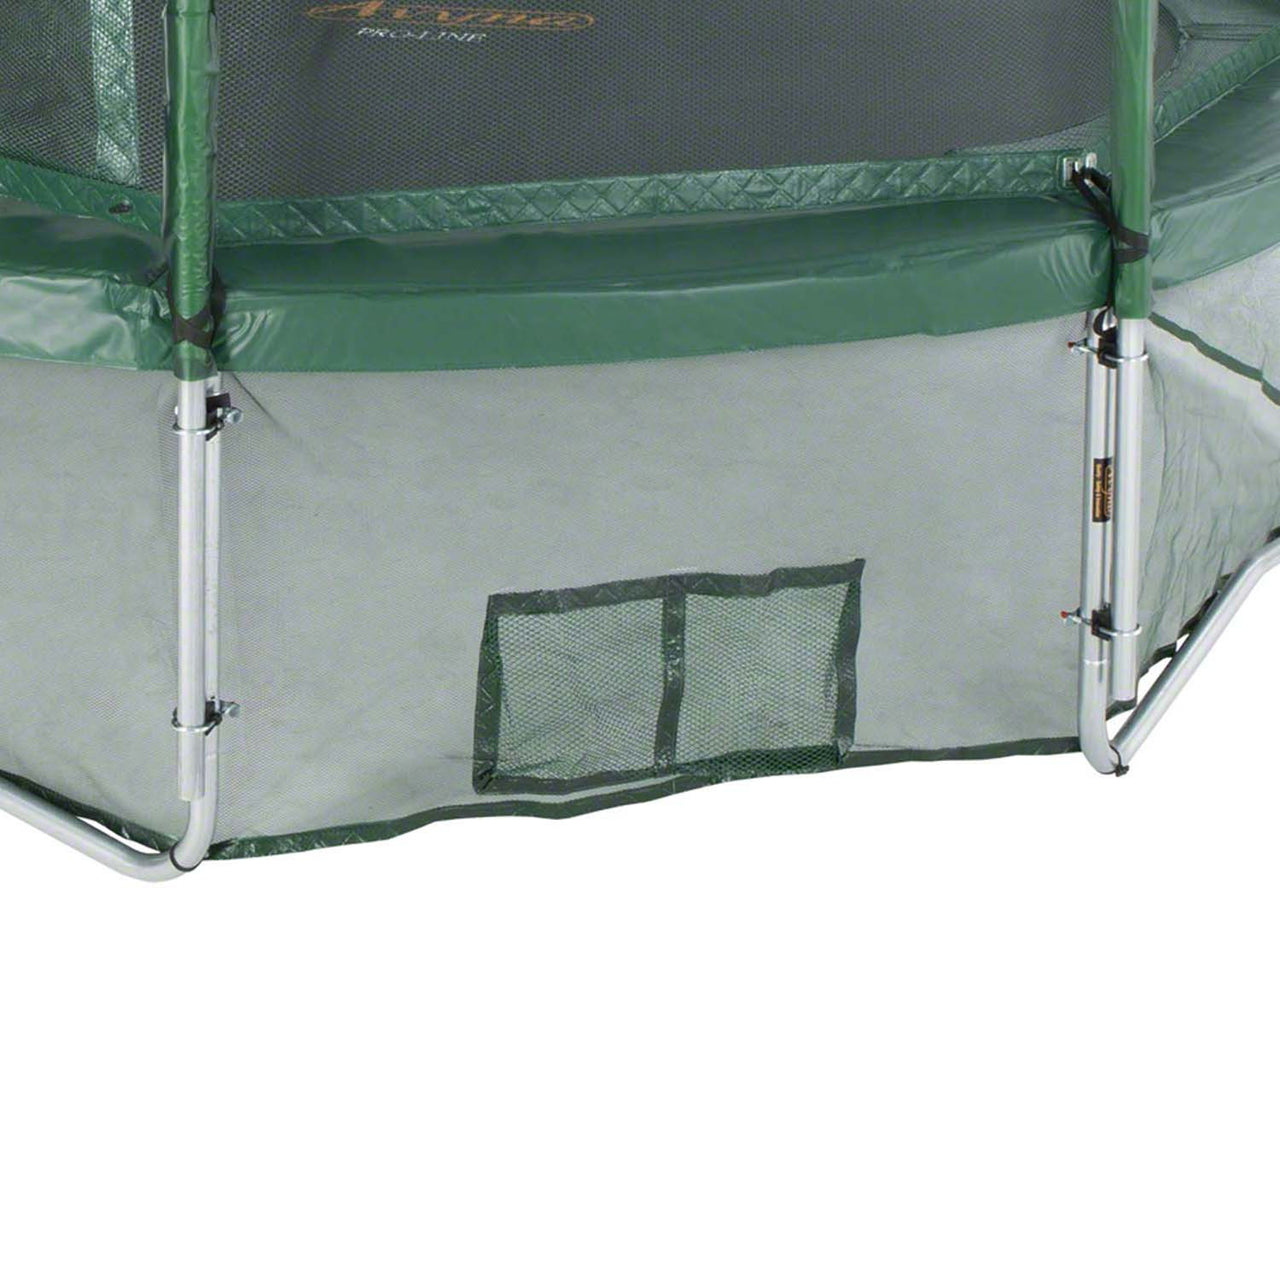 KidWise JumpFree Trampoline Safety Skirt, 12 Foot - Green (KW-JFTR12-SK-G)